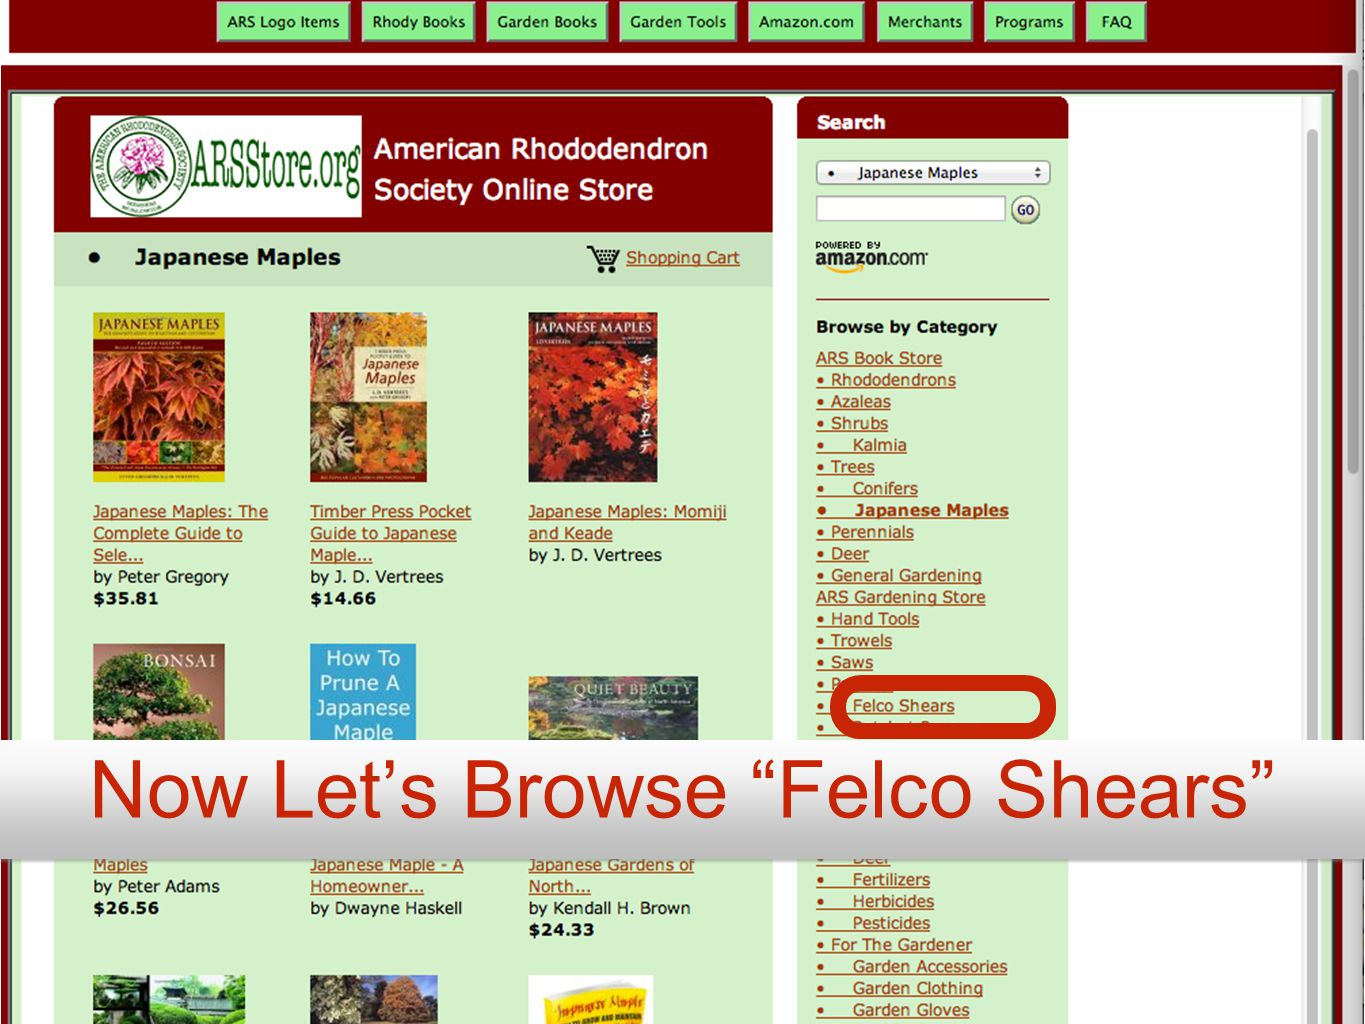 Now Let's Browse Felco Shears